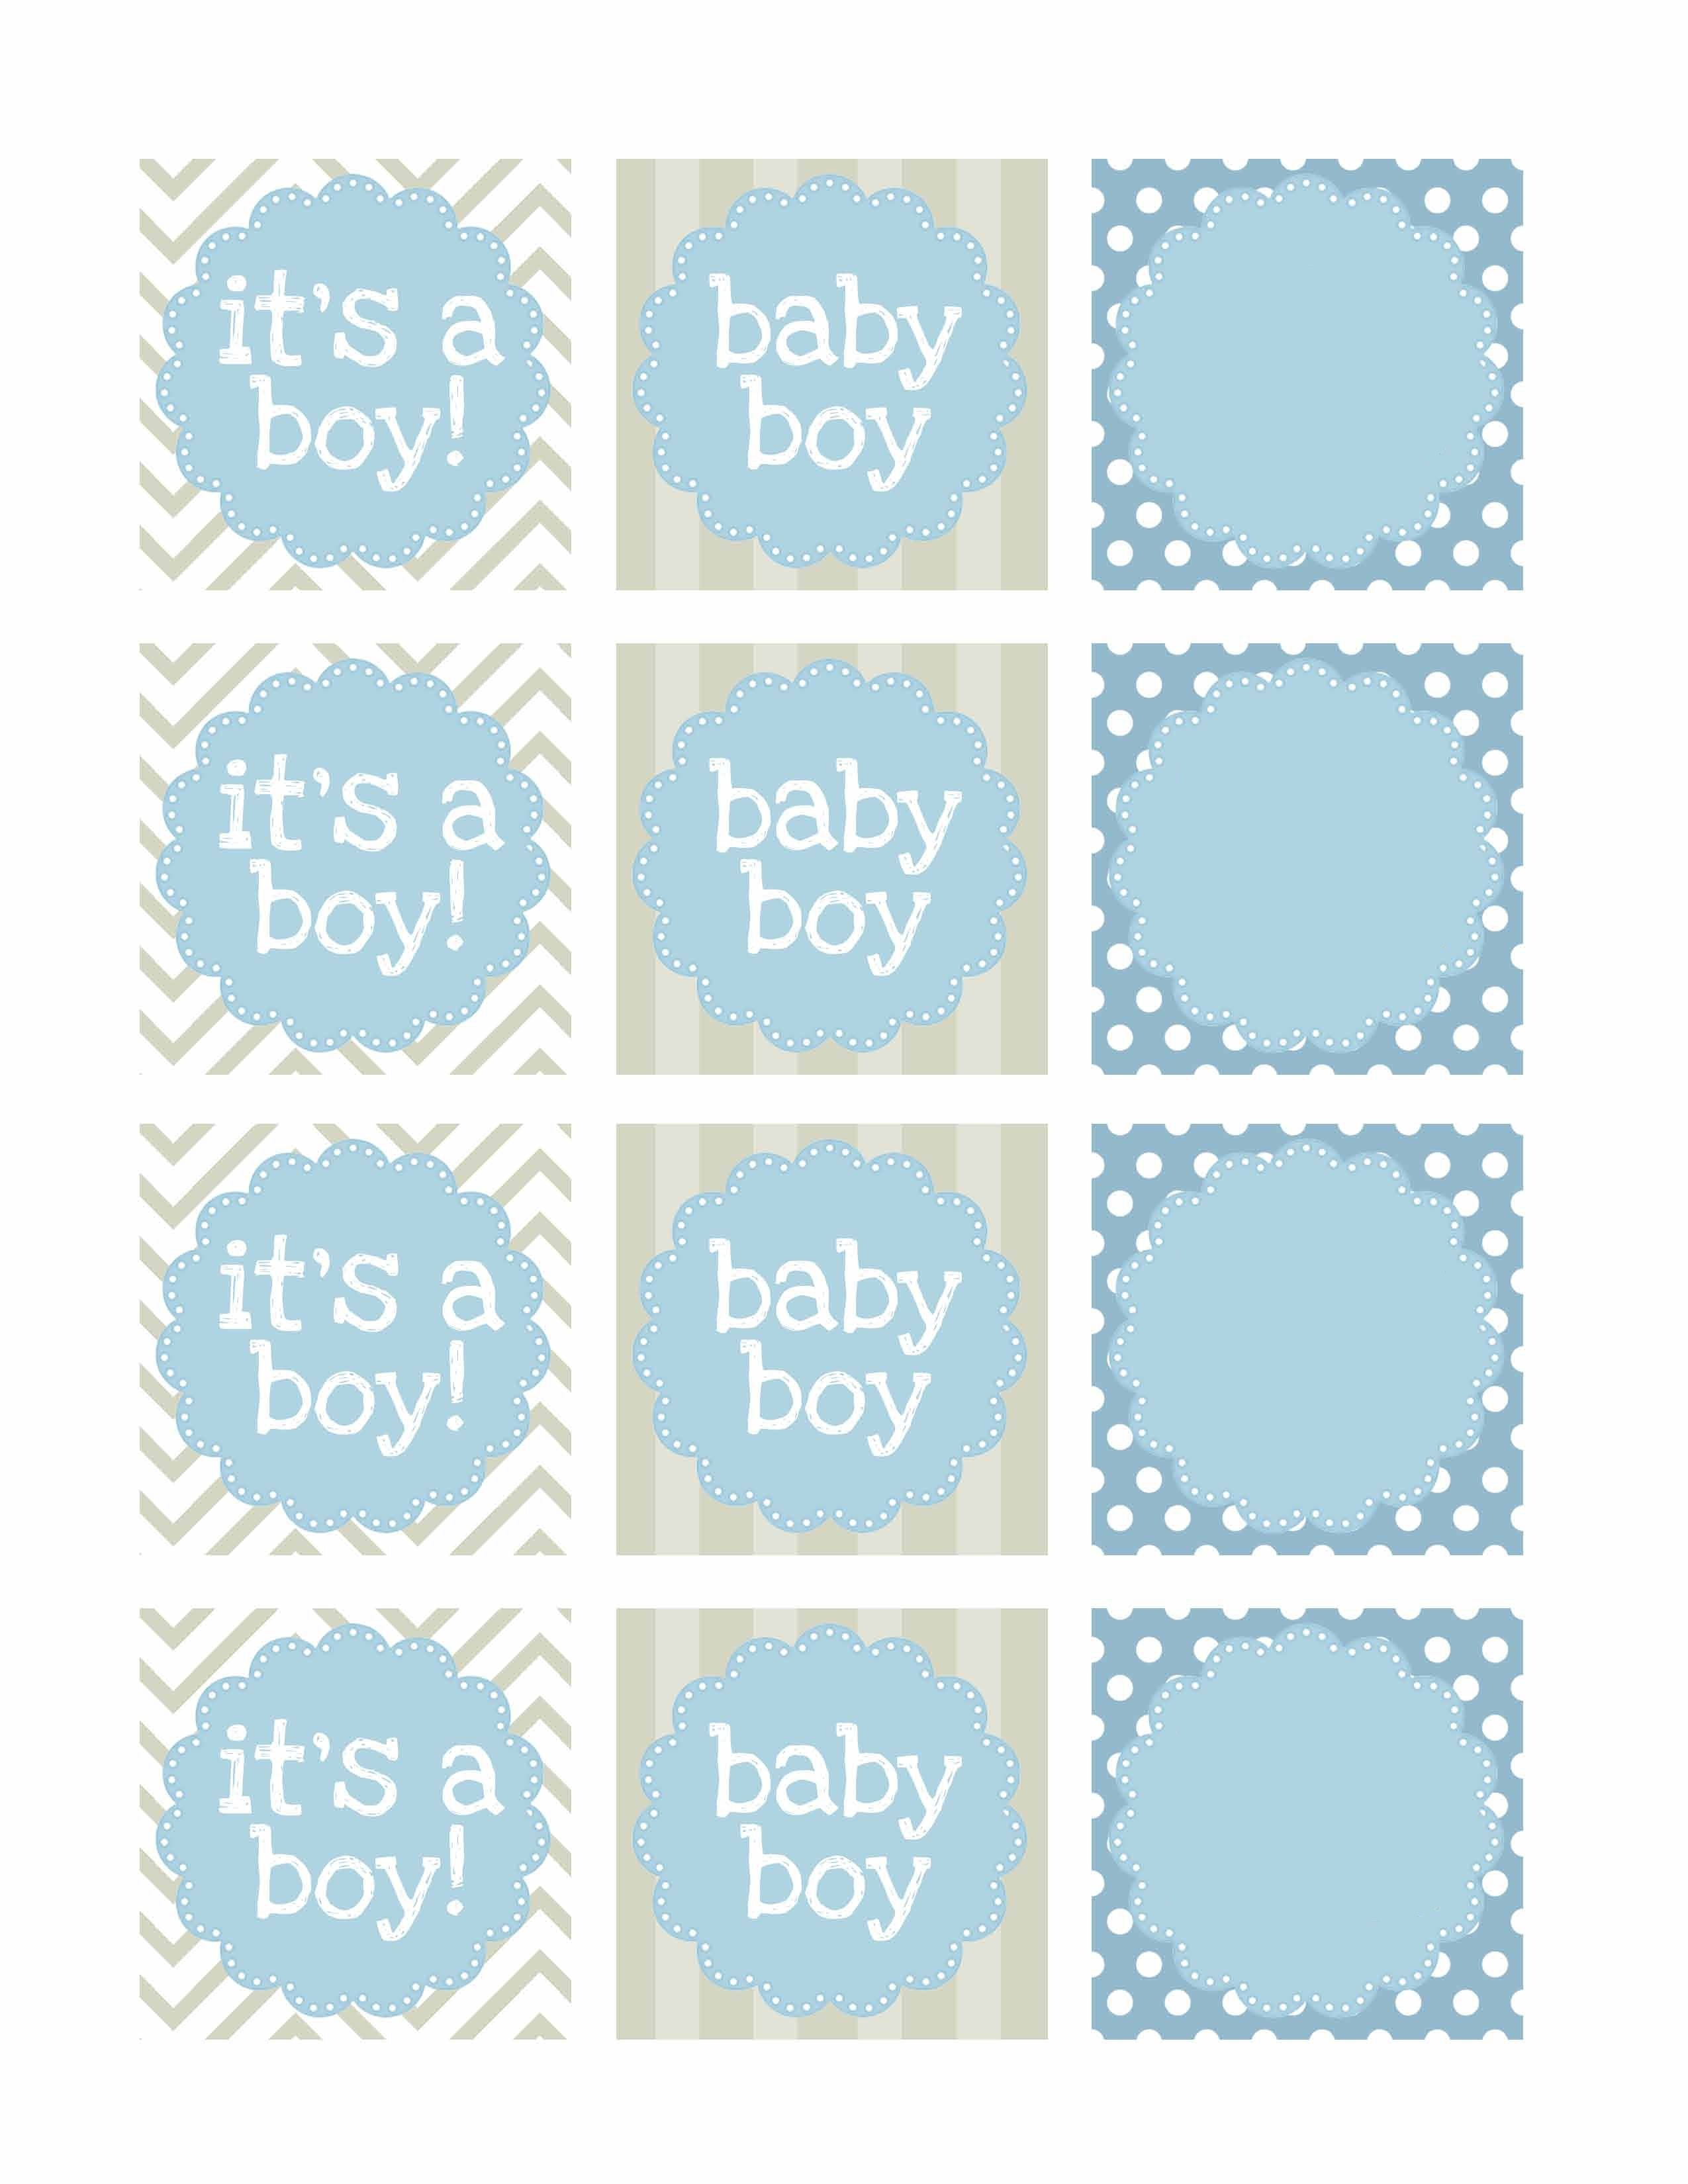 Boy Baby Shower Free Printables | Baby Shower | Baby Shower Labels - Free Printable Baby Shower Labels And Tags